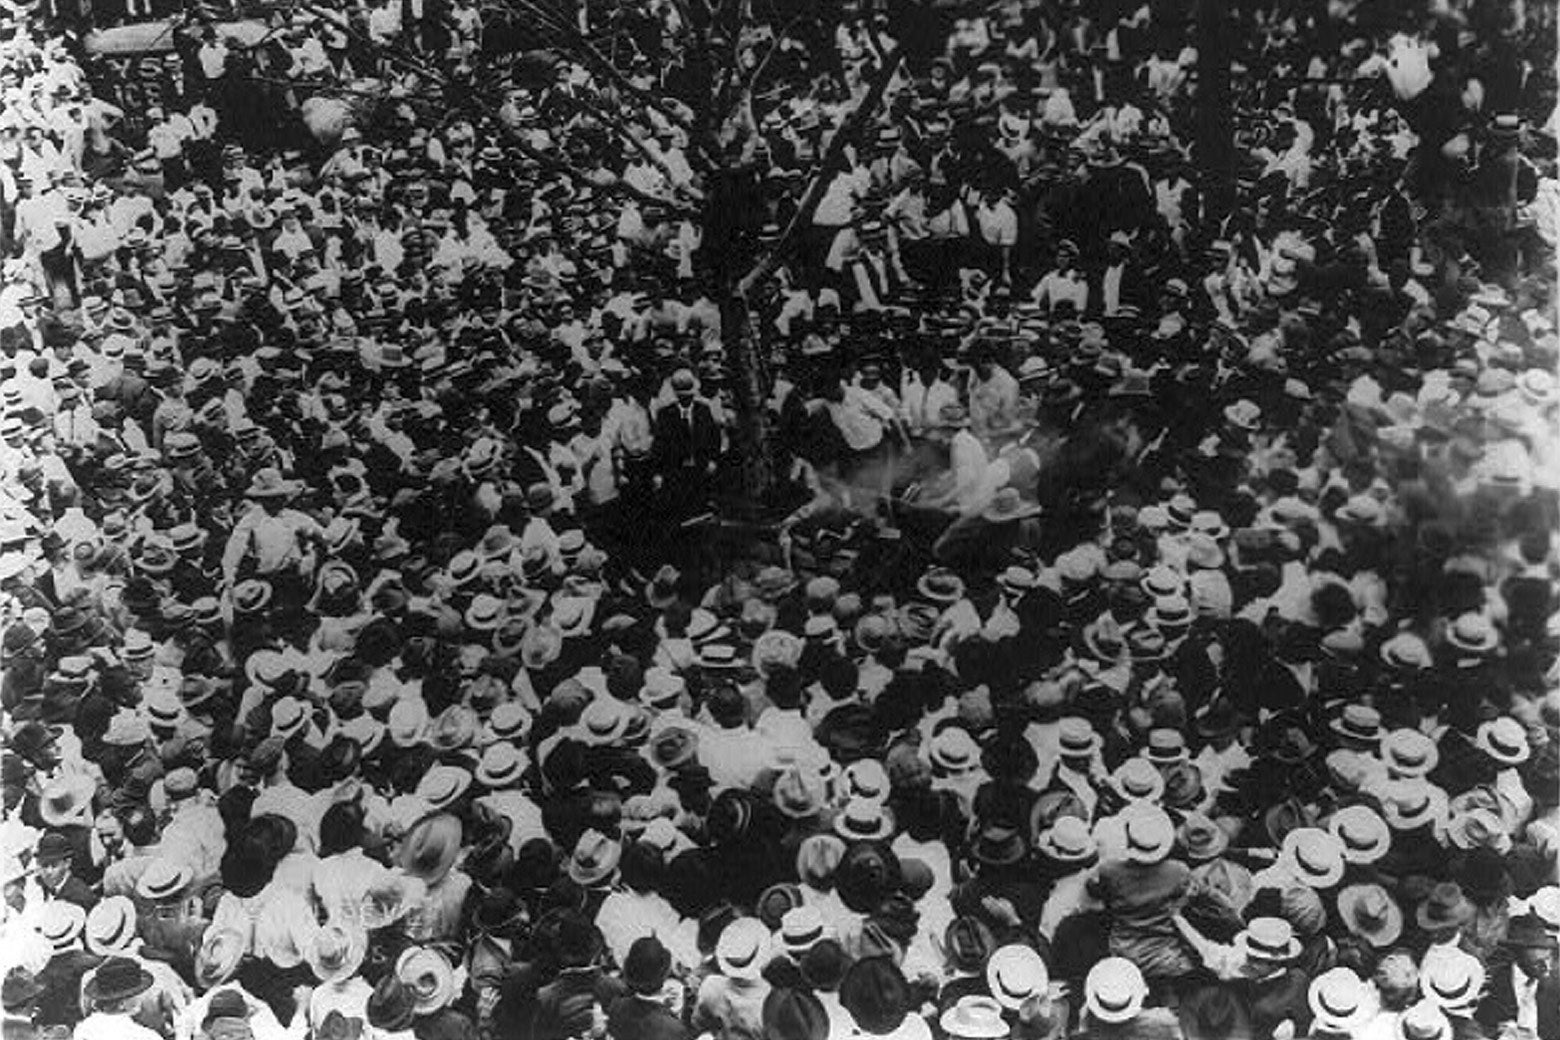 A picture of the mob preparing to lynch Jesse Washington from a tree in front of Waco city hall taken by Fred Gildersleeve on May 15, 1916. Library of Congress